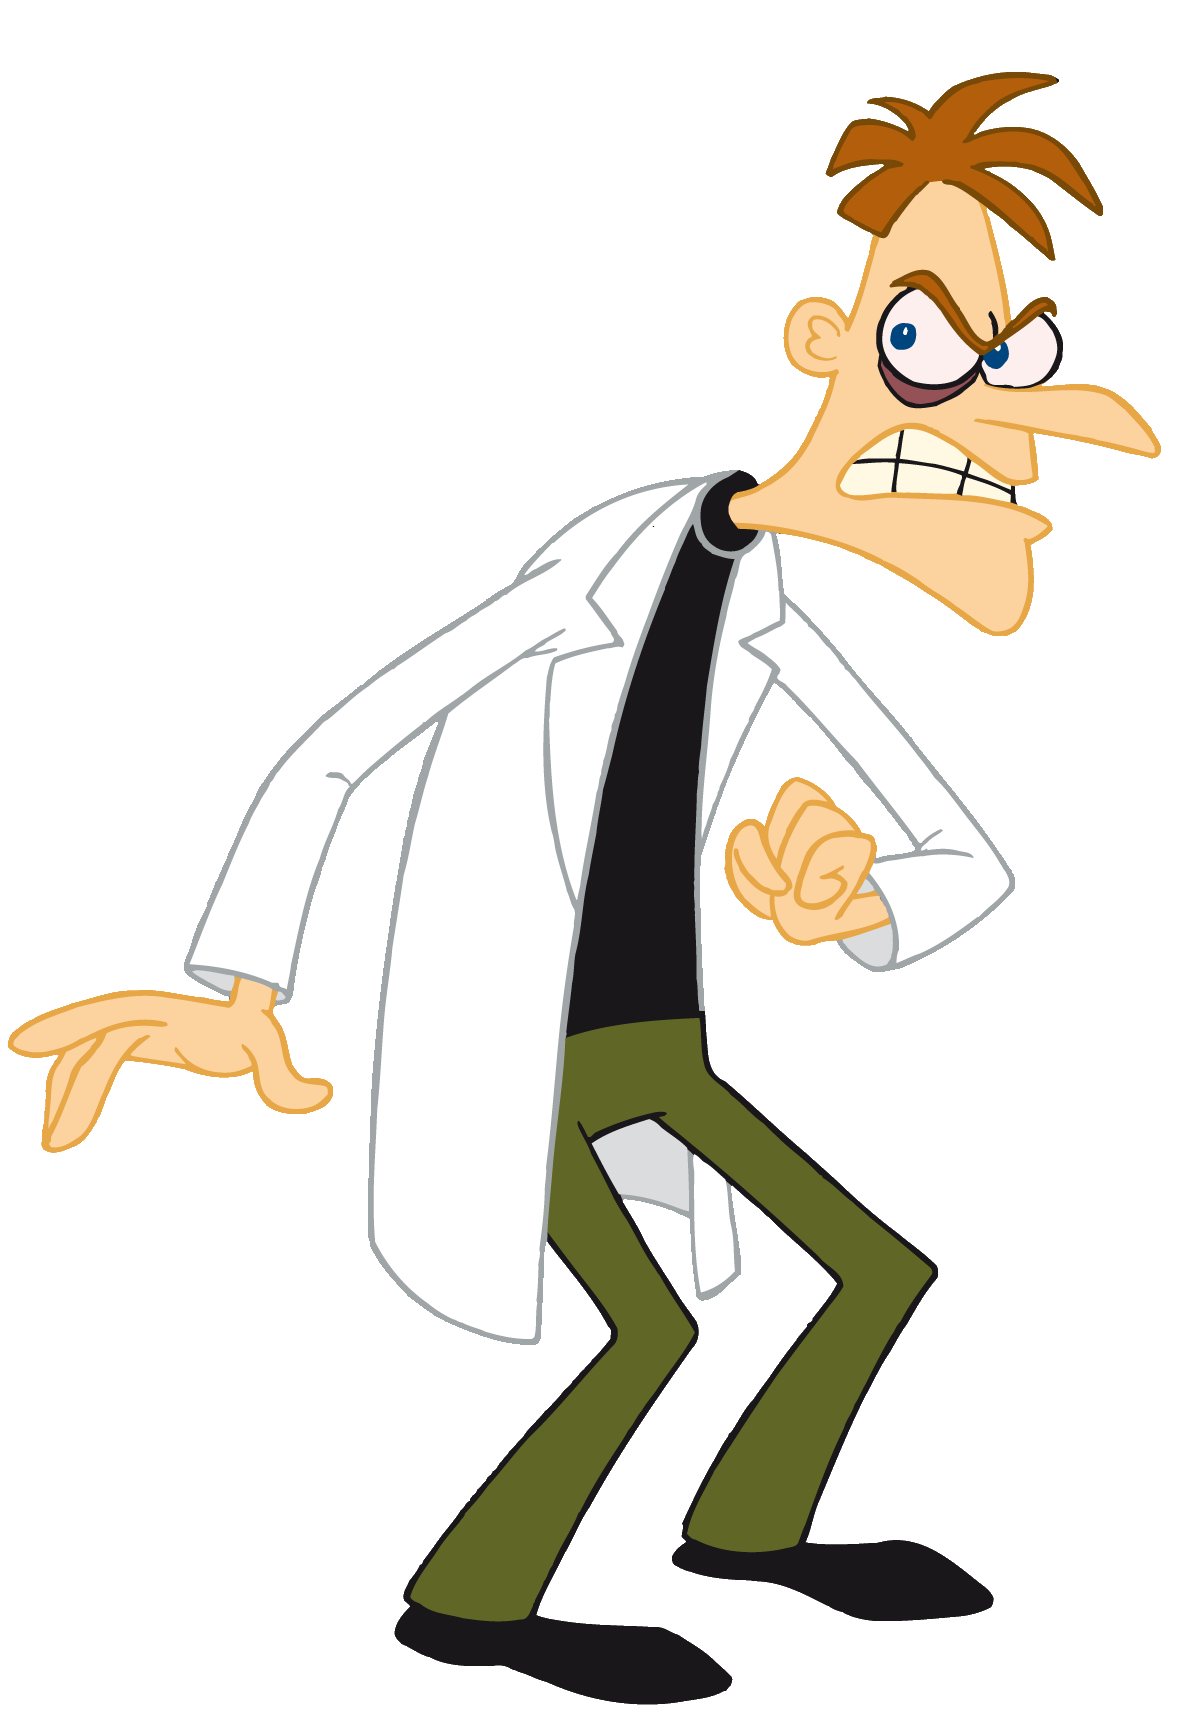 Heinz Doofenschmirtz, Master of the Backstory